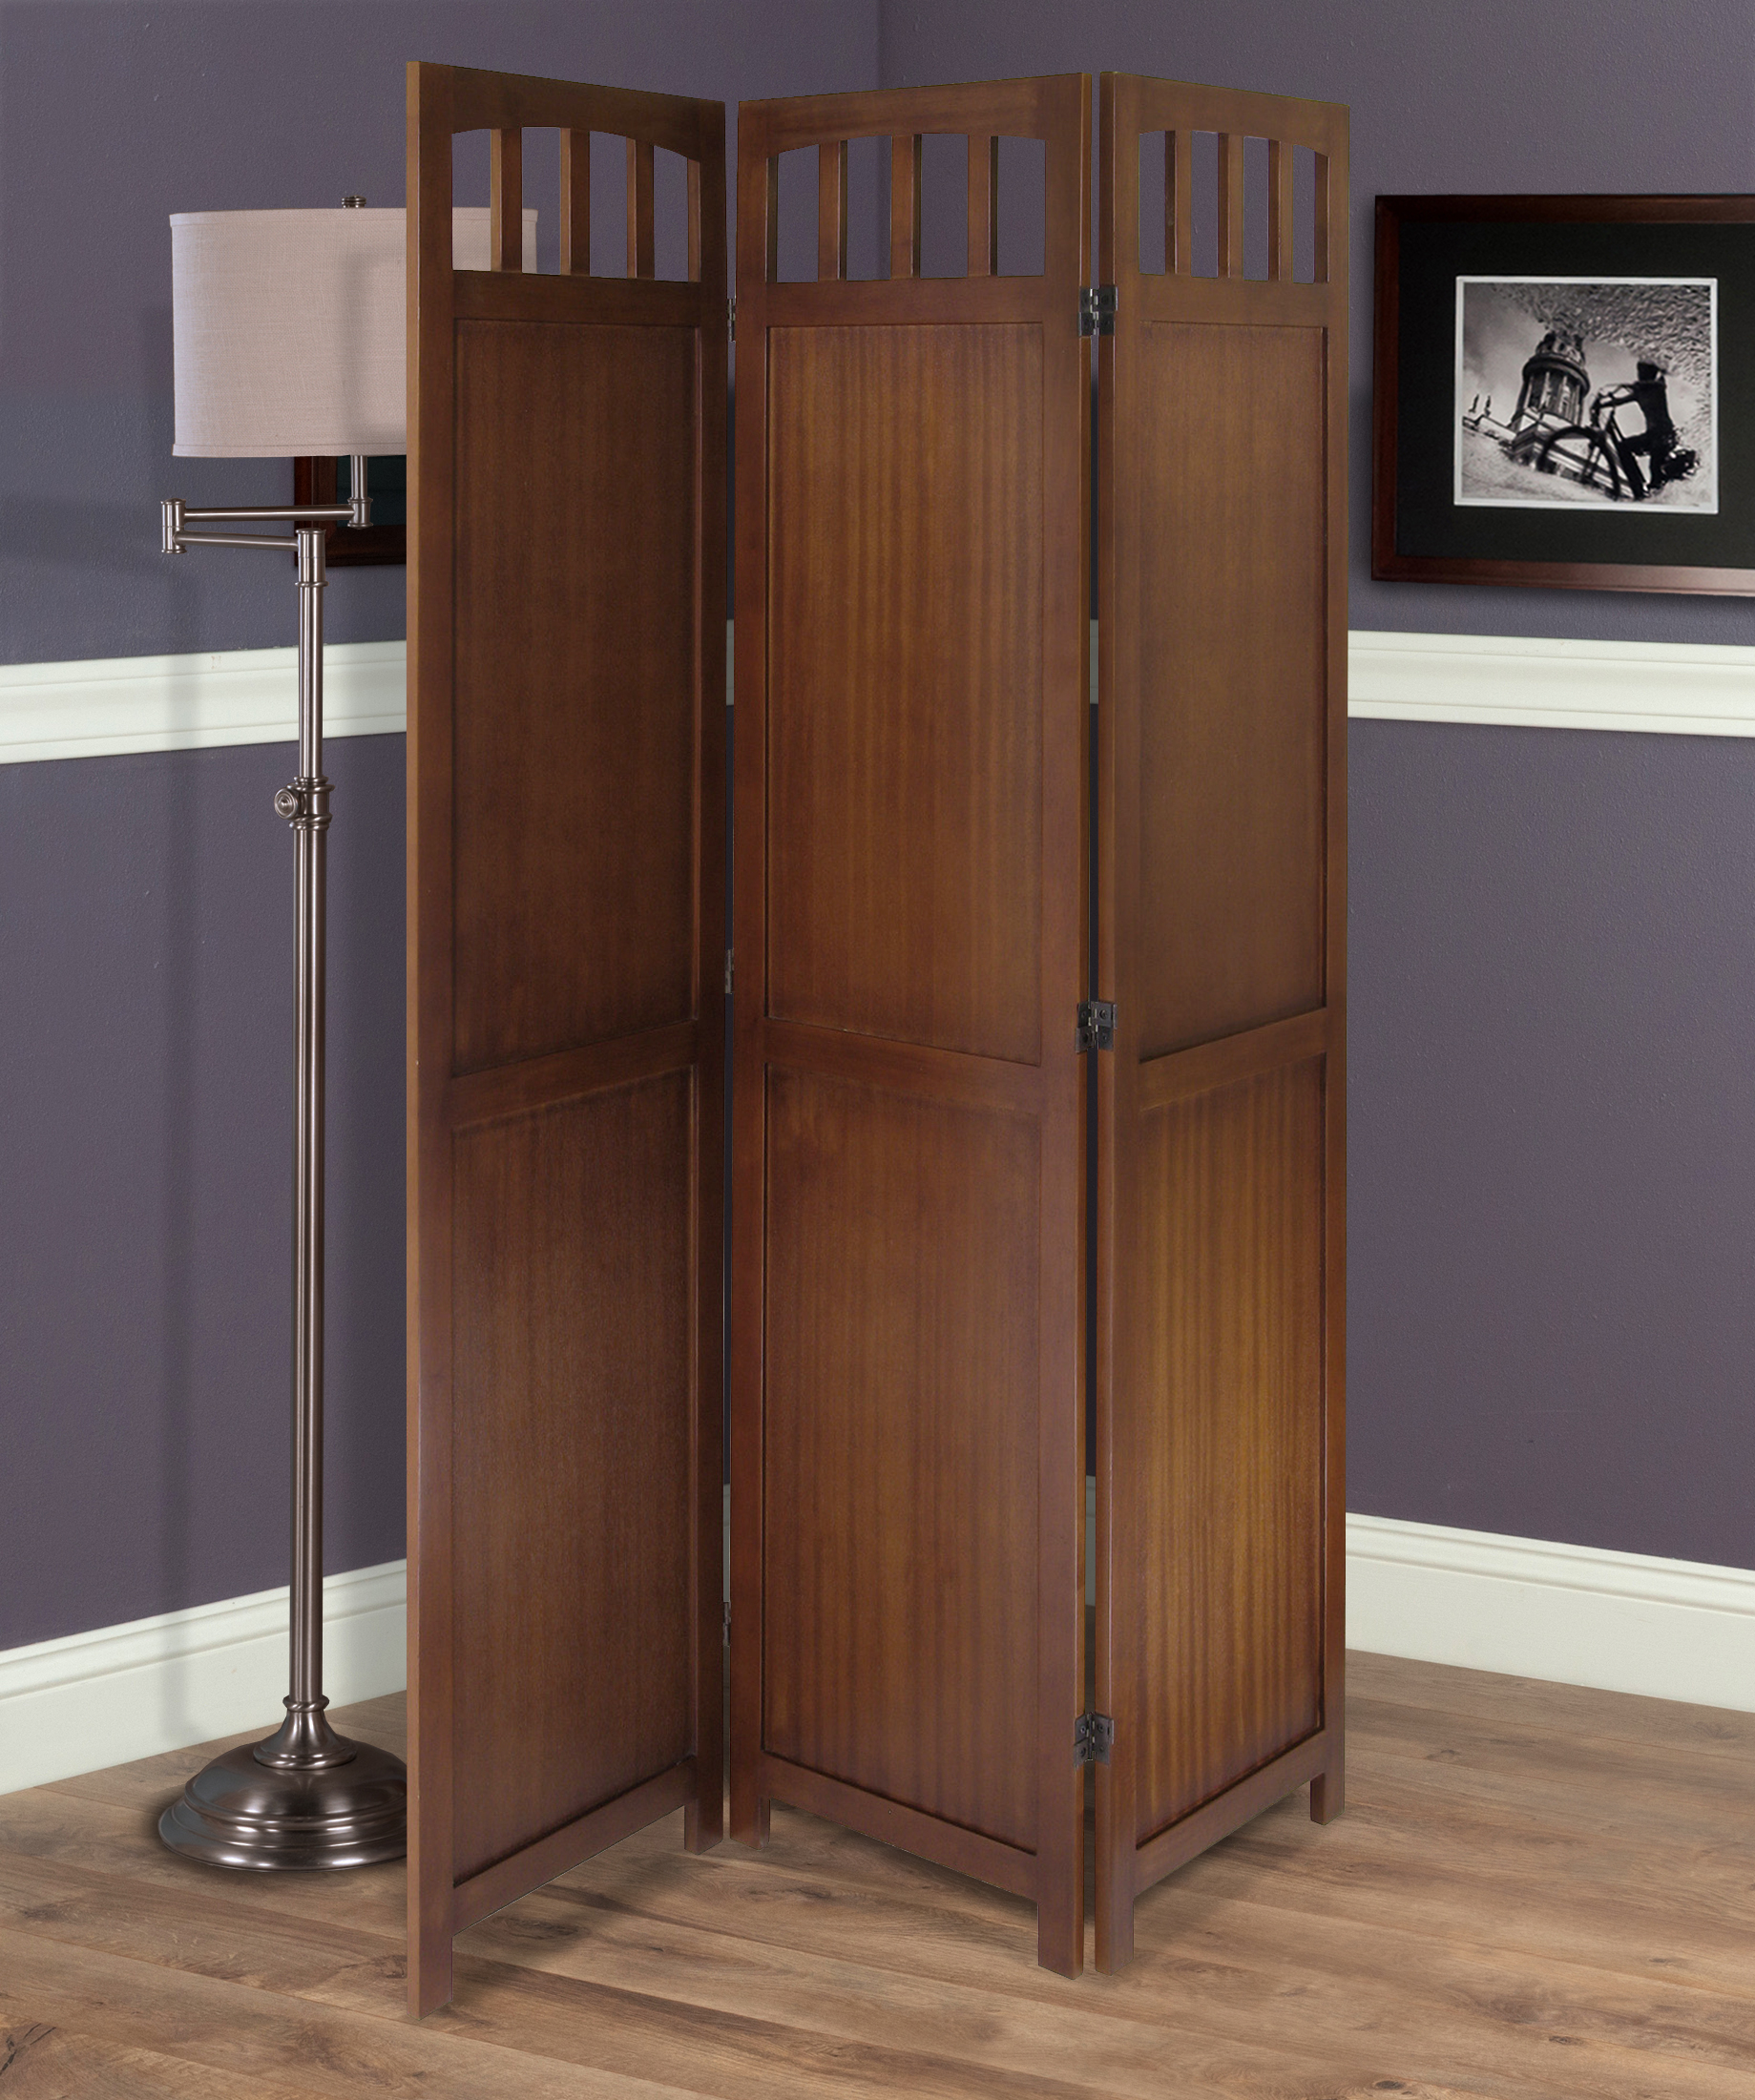 Winsome Wood William 52 4 In X 70 In Walnut Finish 3 Panel Room Divider Lowe S Canada